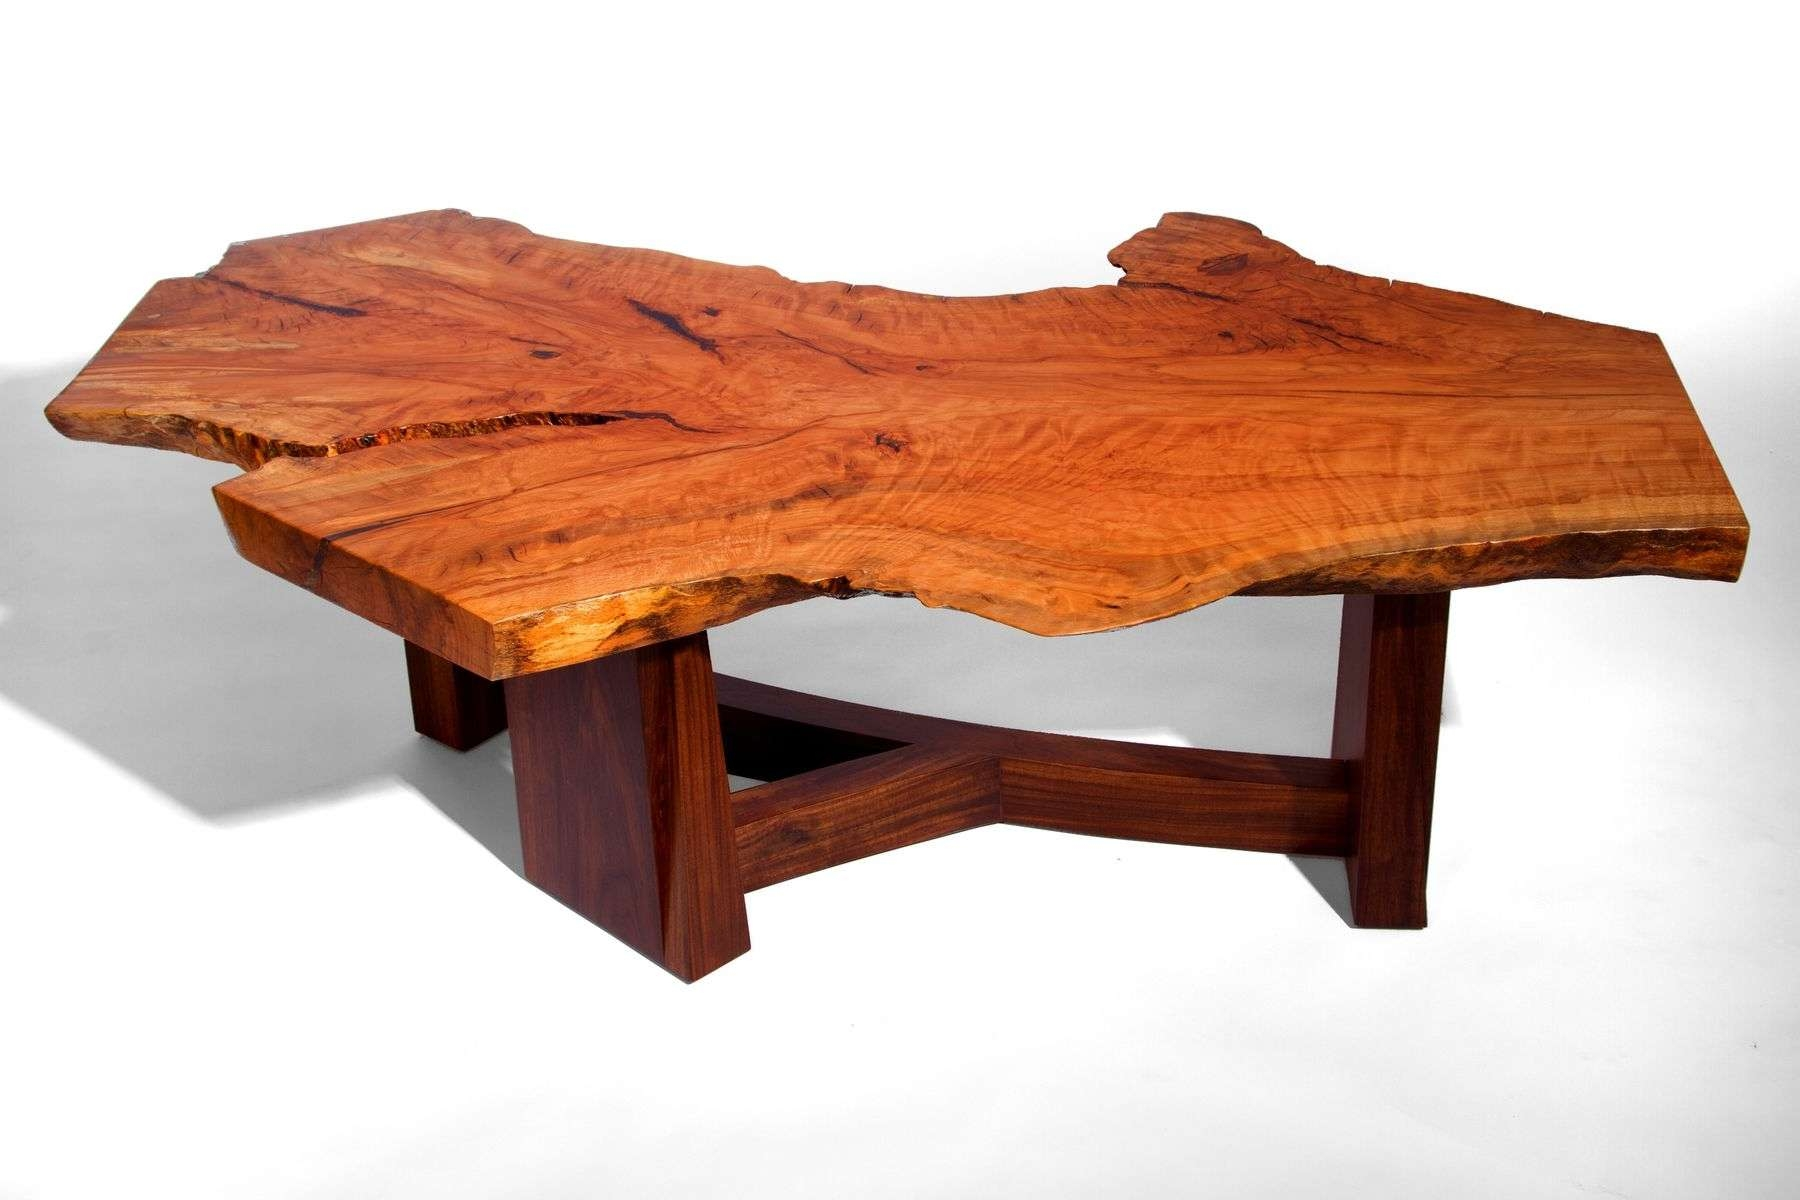 Famous Handmade Wooden Coffee Tables Intended For Splendiferous Custom Reclaimed Barn Wood Coffee Tablecorl (View 9 of 20)